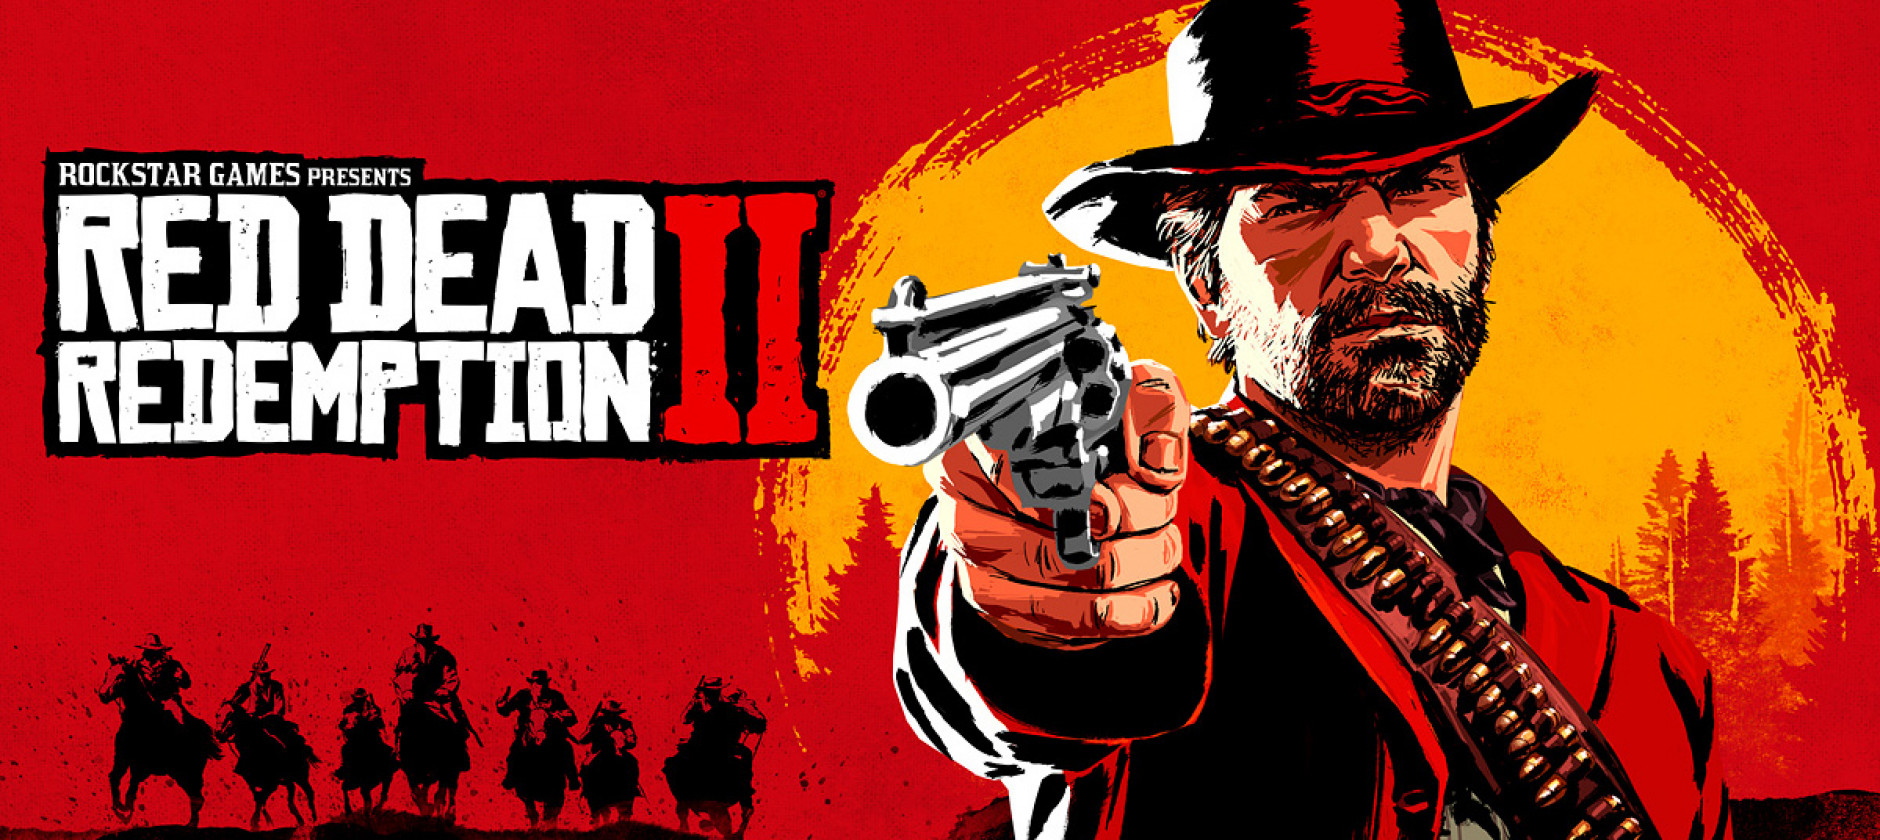 Record di vendite per Red Dead Redemption 2: un weekend da 725 mln di dollari